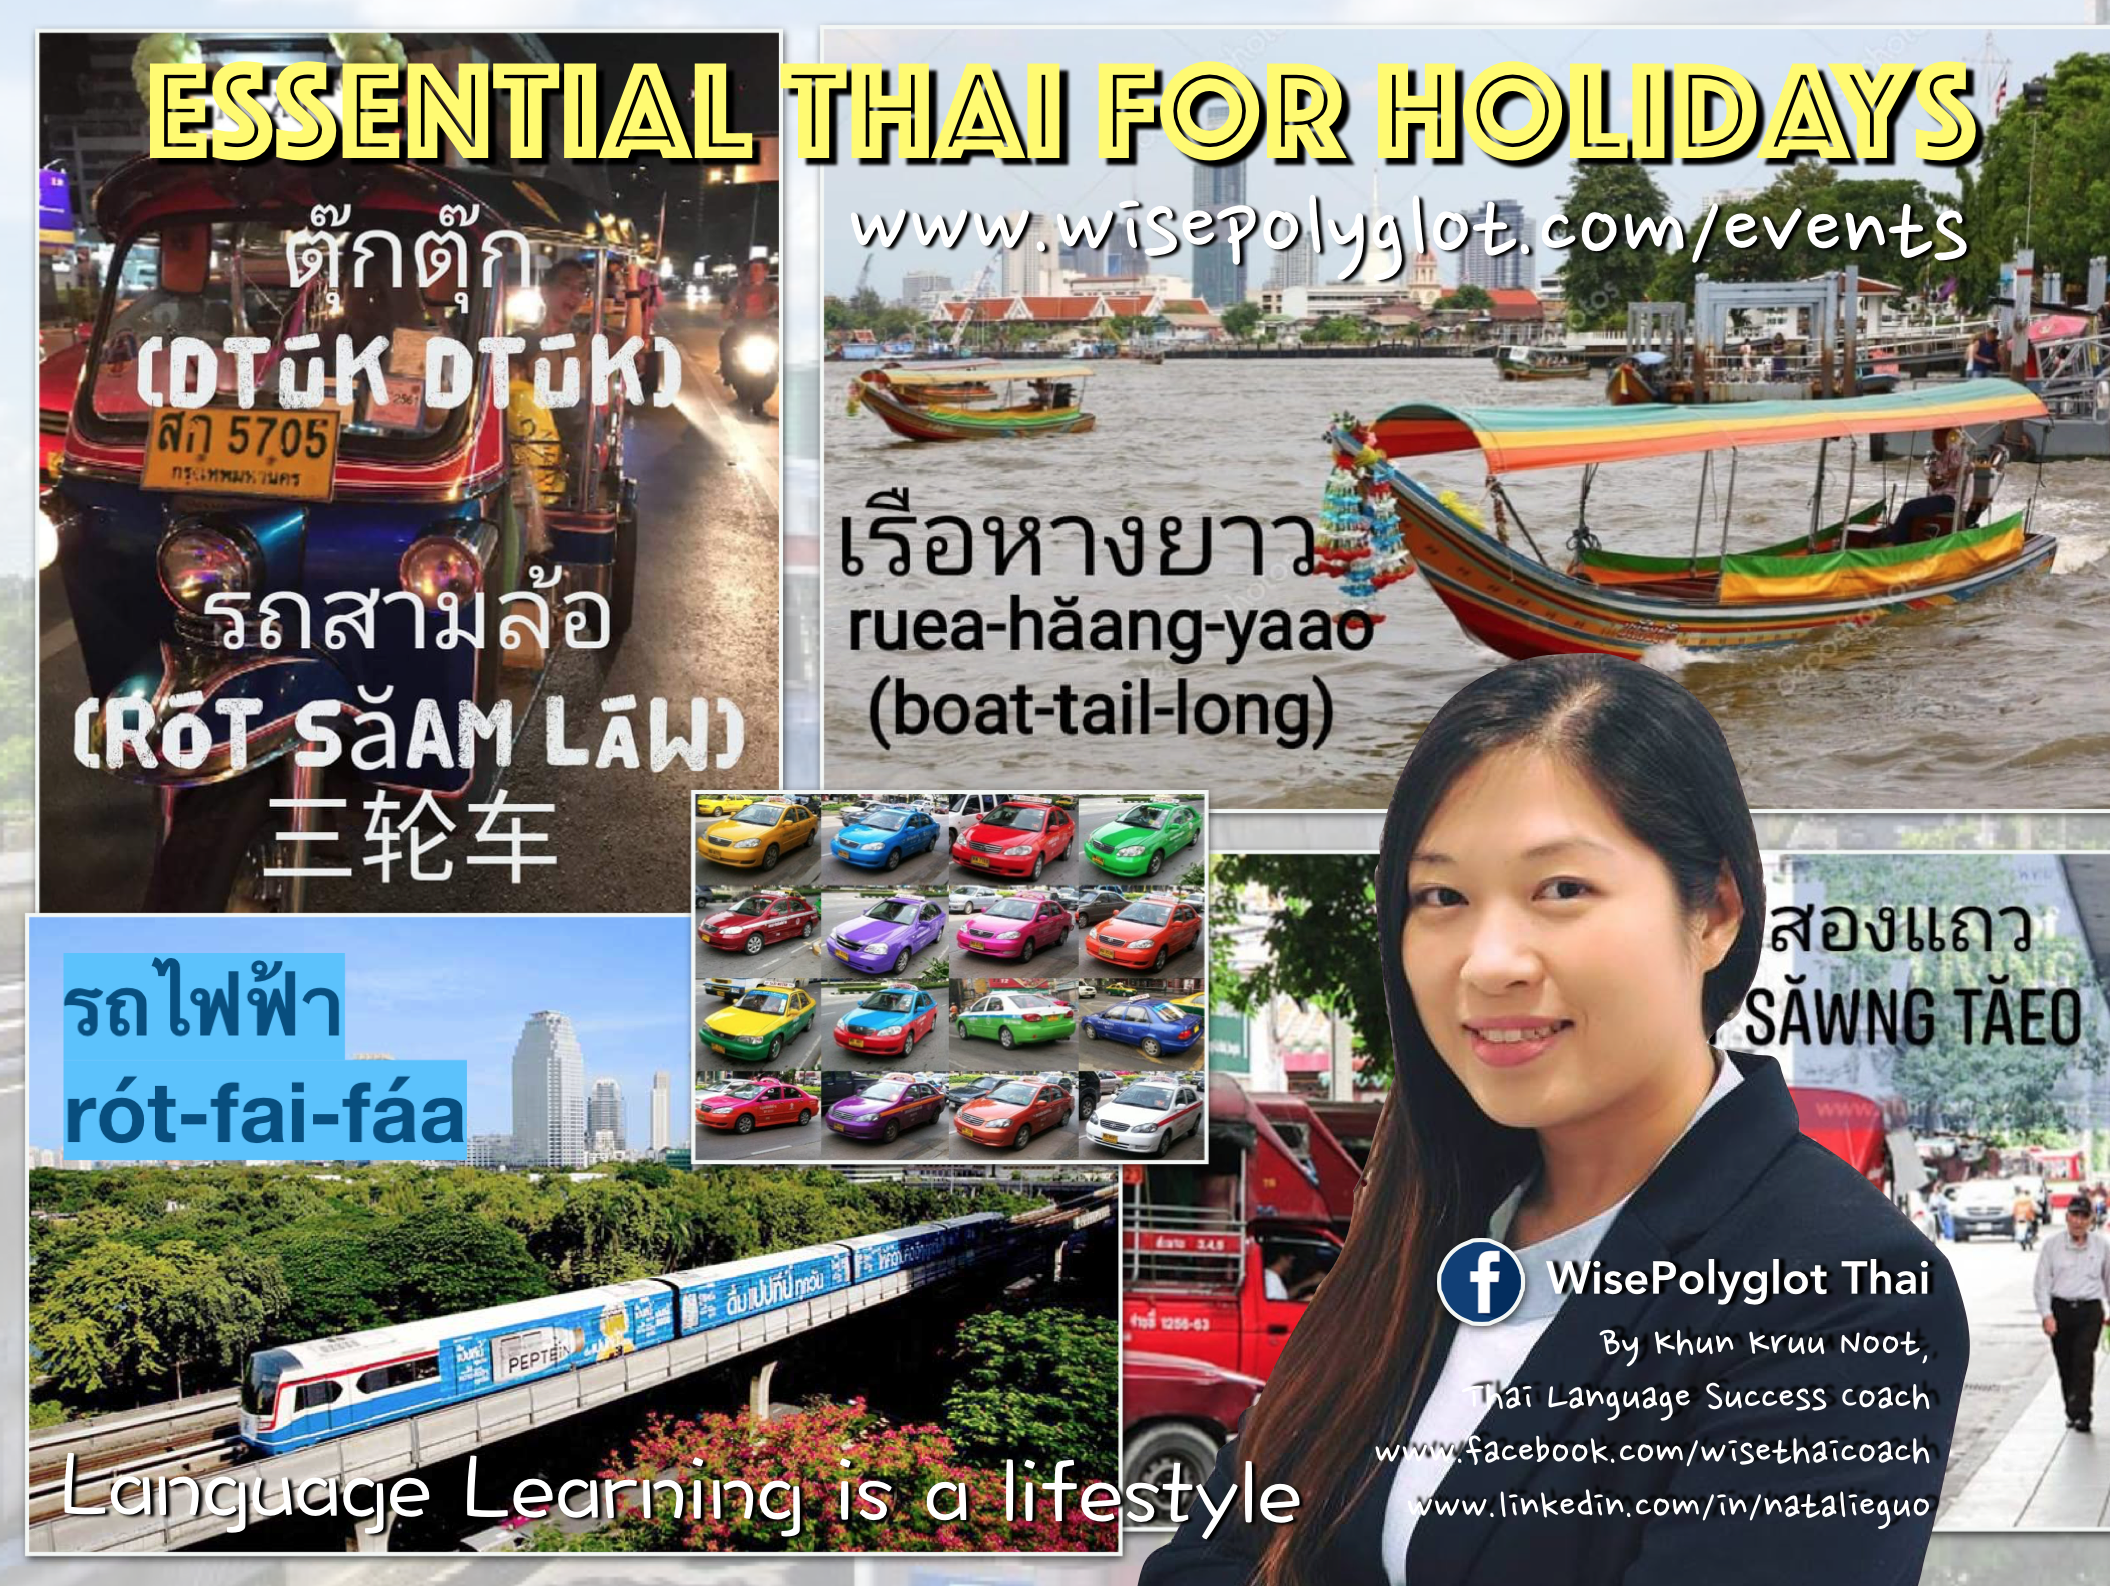 Wisepolyglot Thai language Holiday 5 Noo